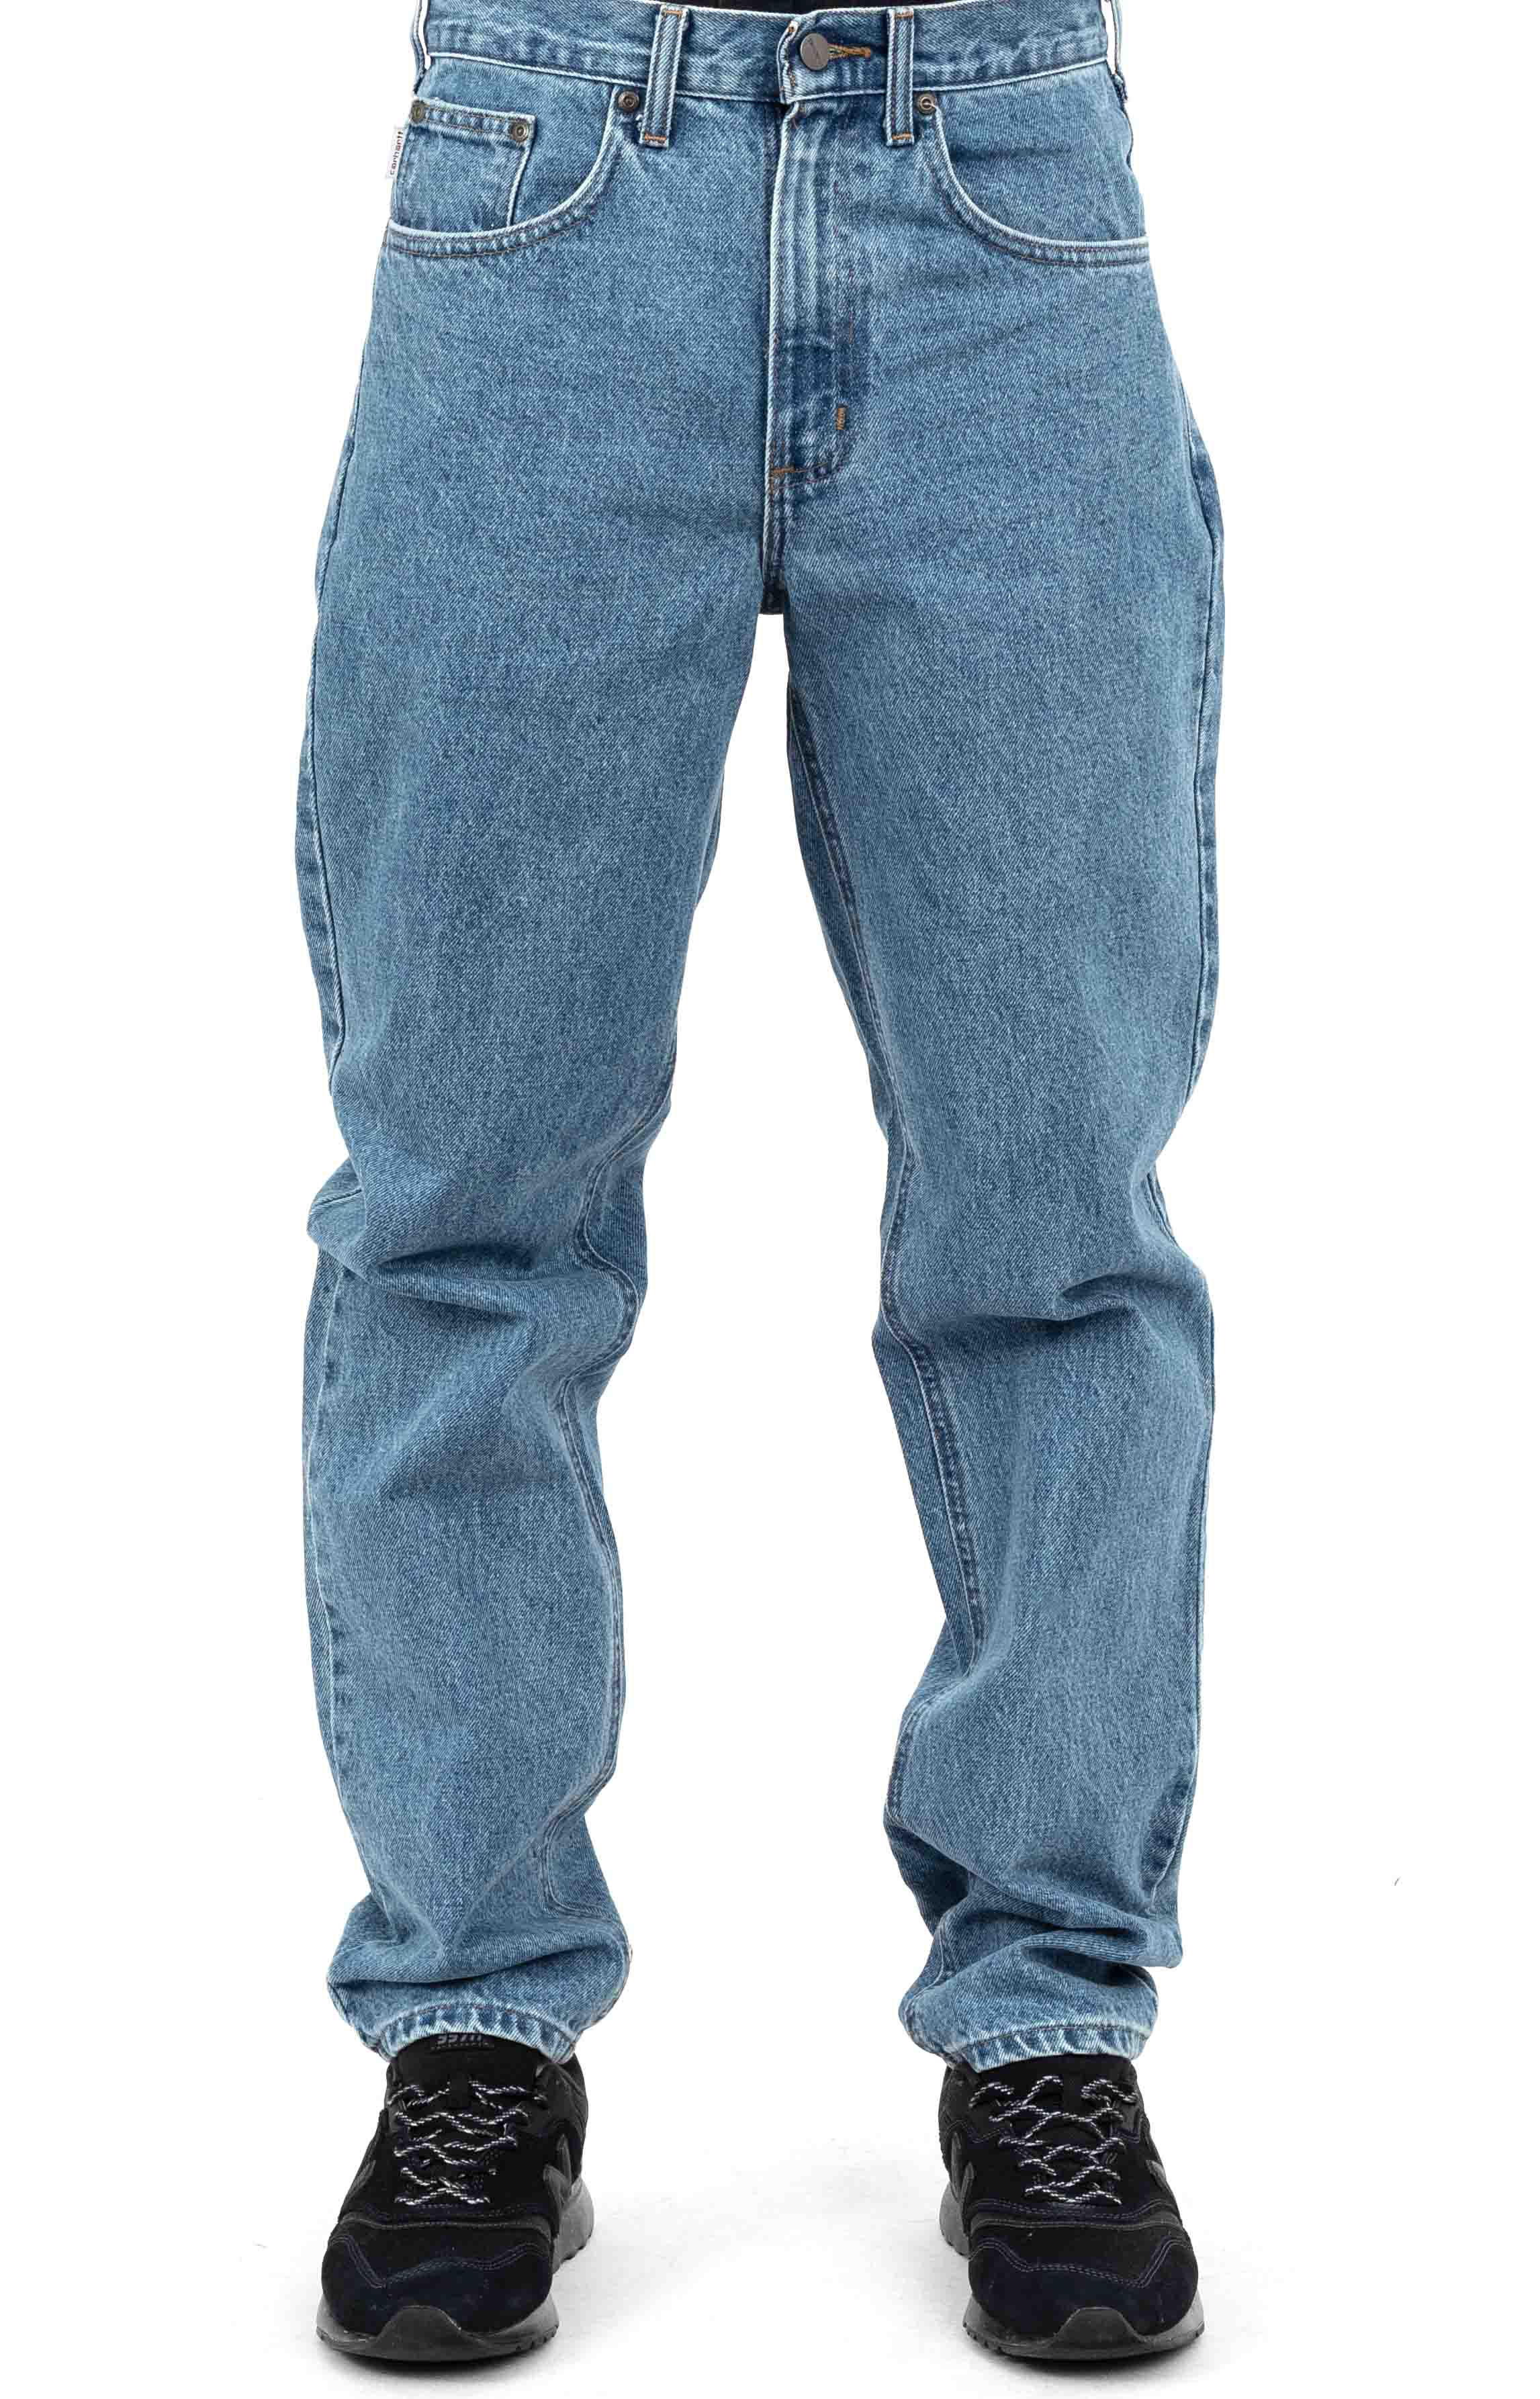 (B17) Relaxed Fit Tapered Leg Jeans - Stonewash